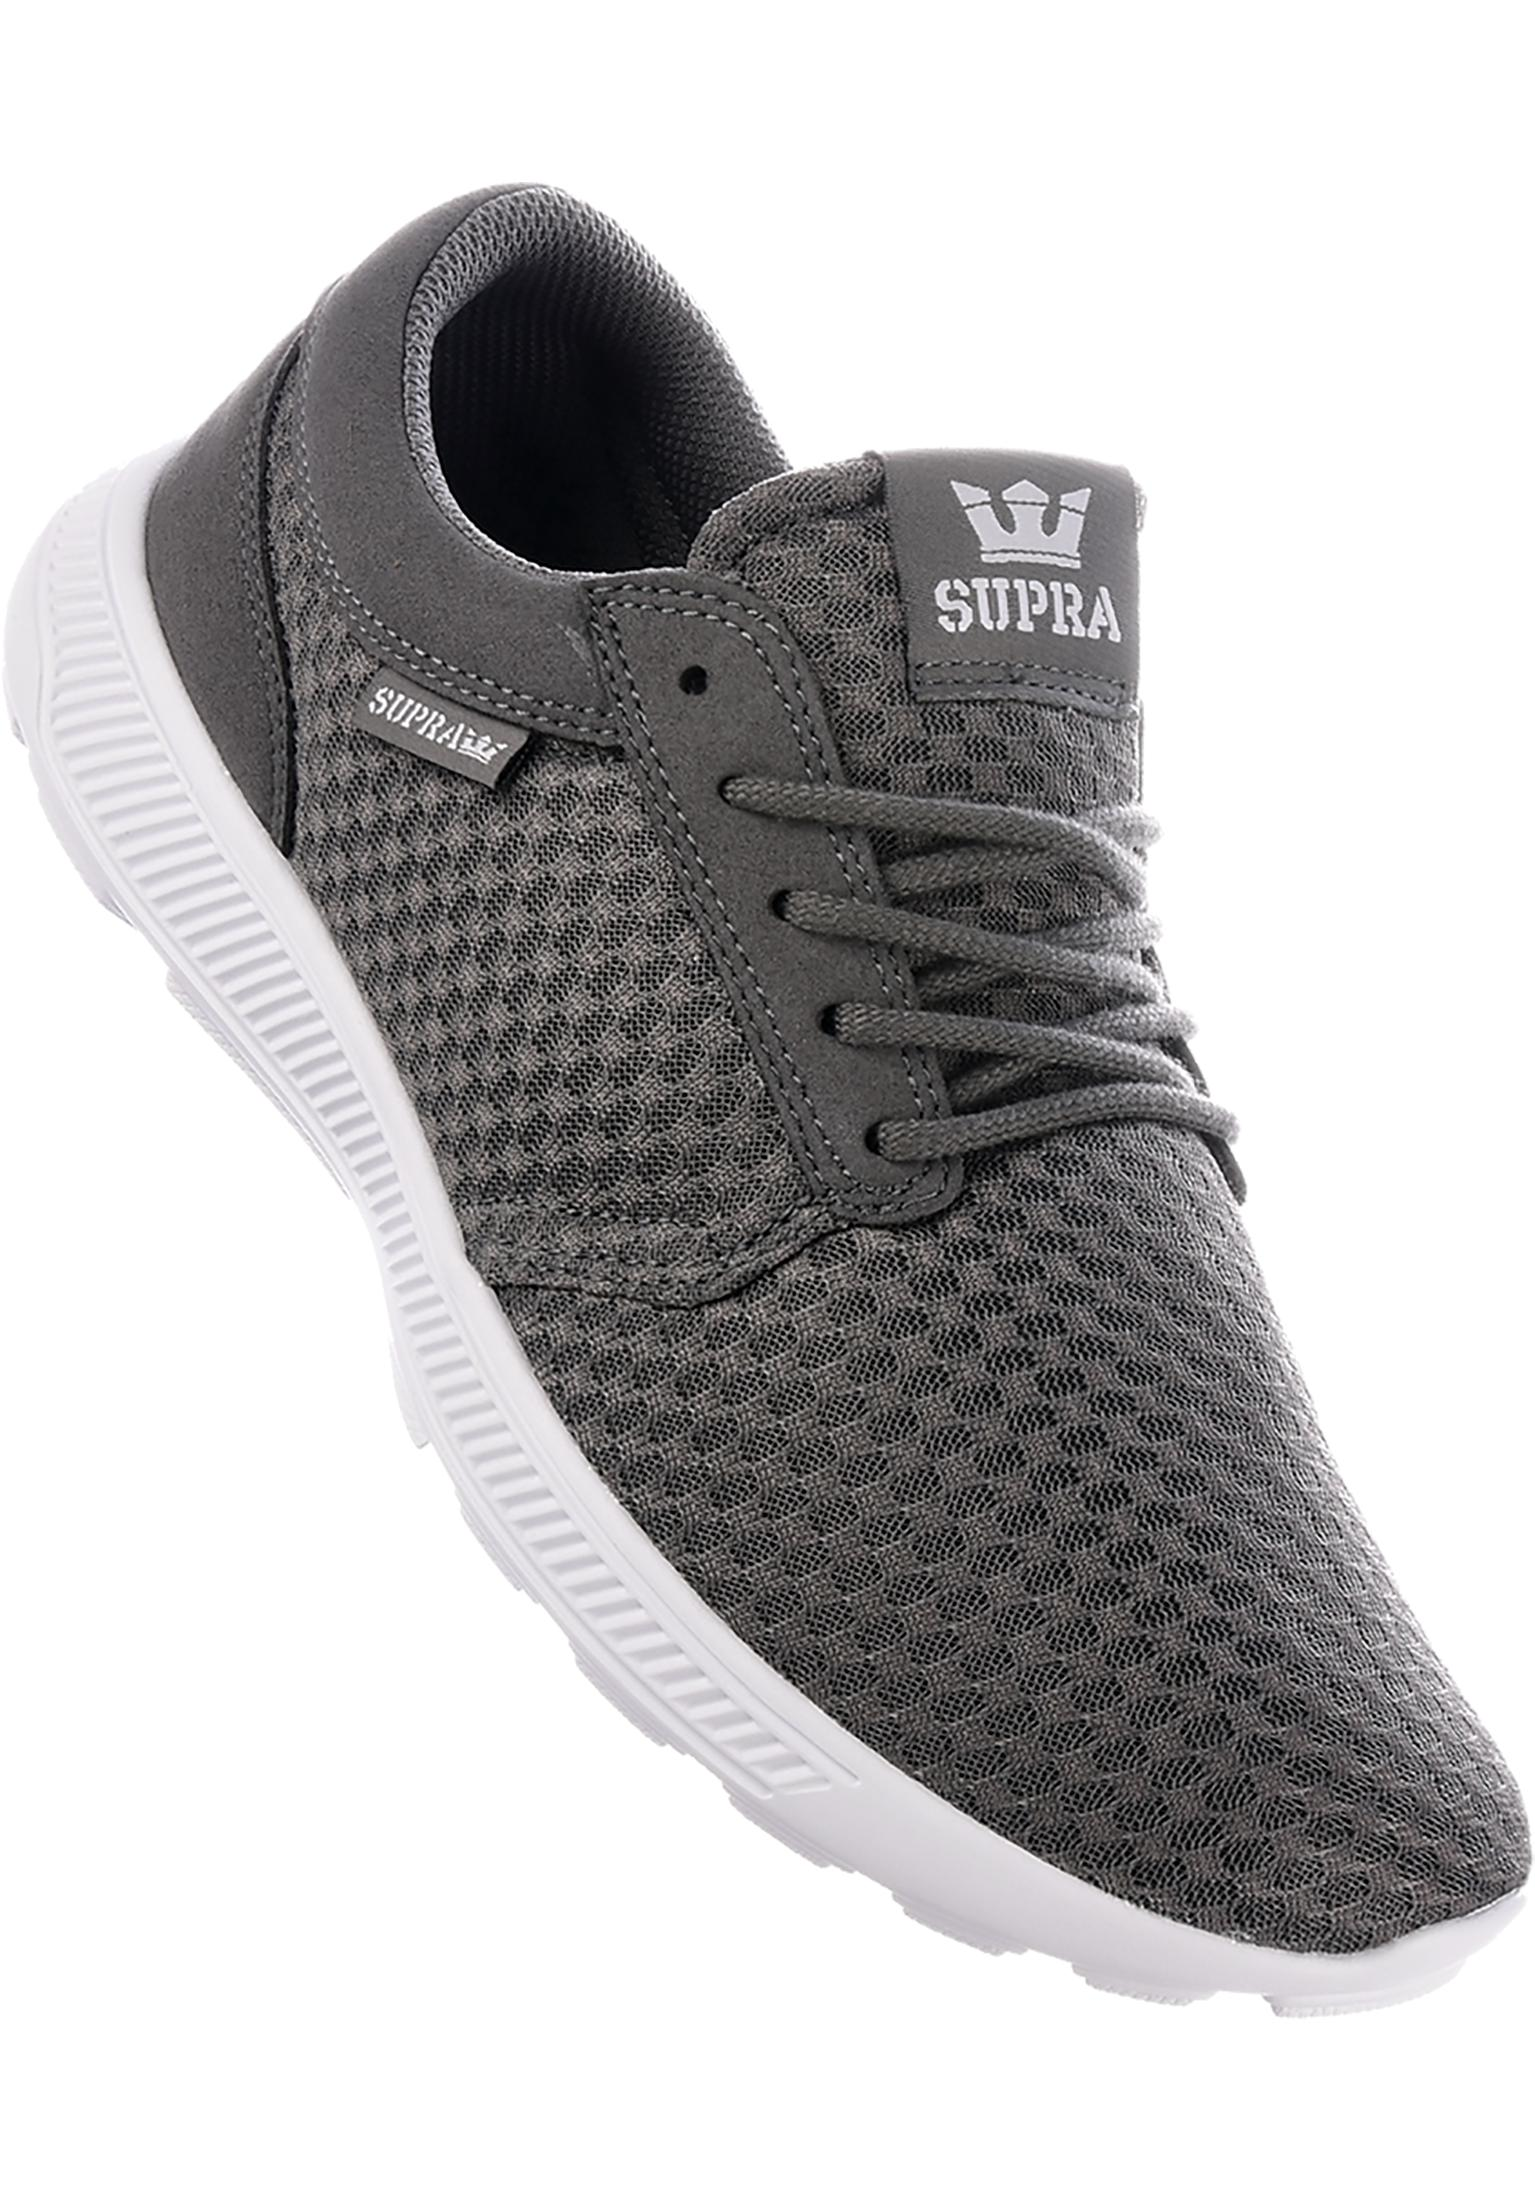 08c2a0c85bf6 Hammer Run Supra All Shoes in grey-white for Men